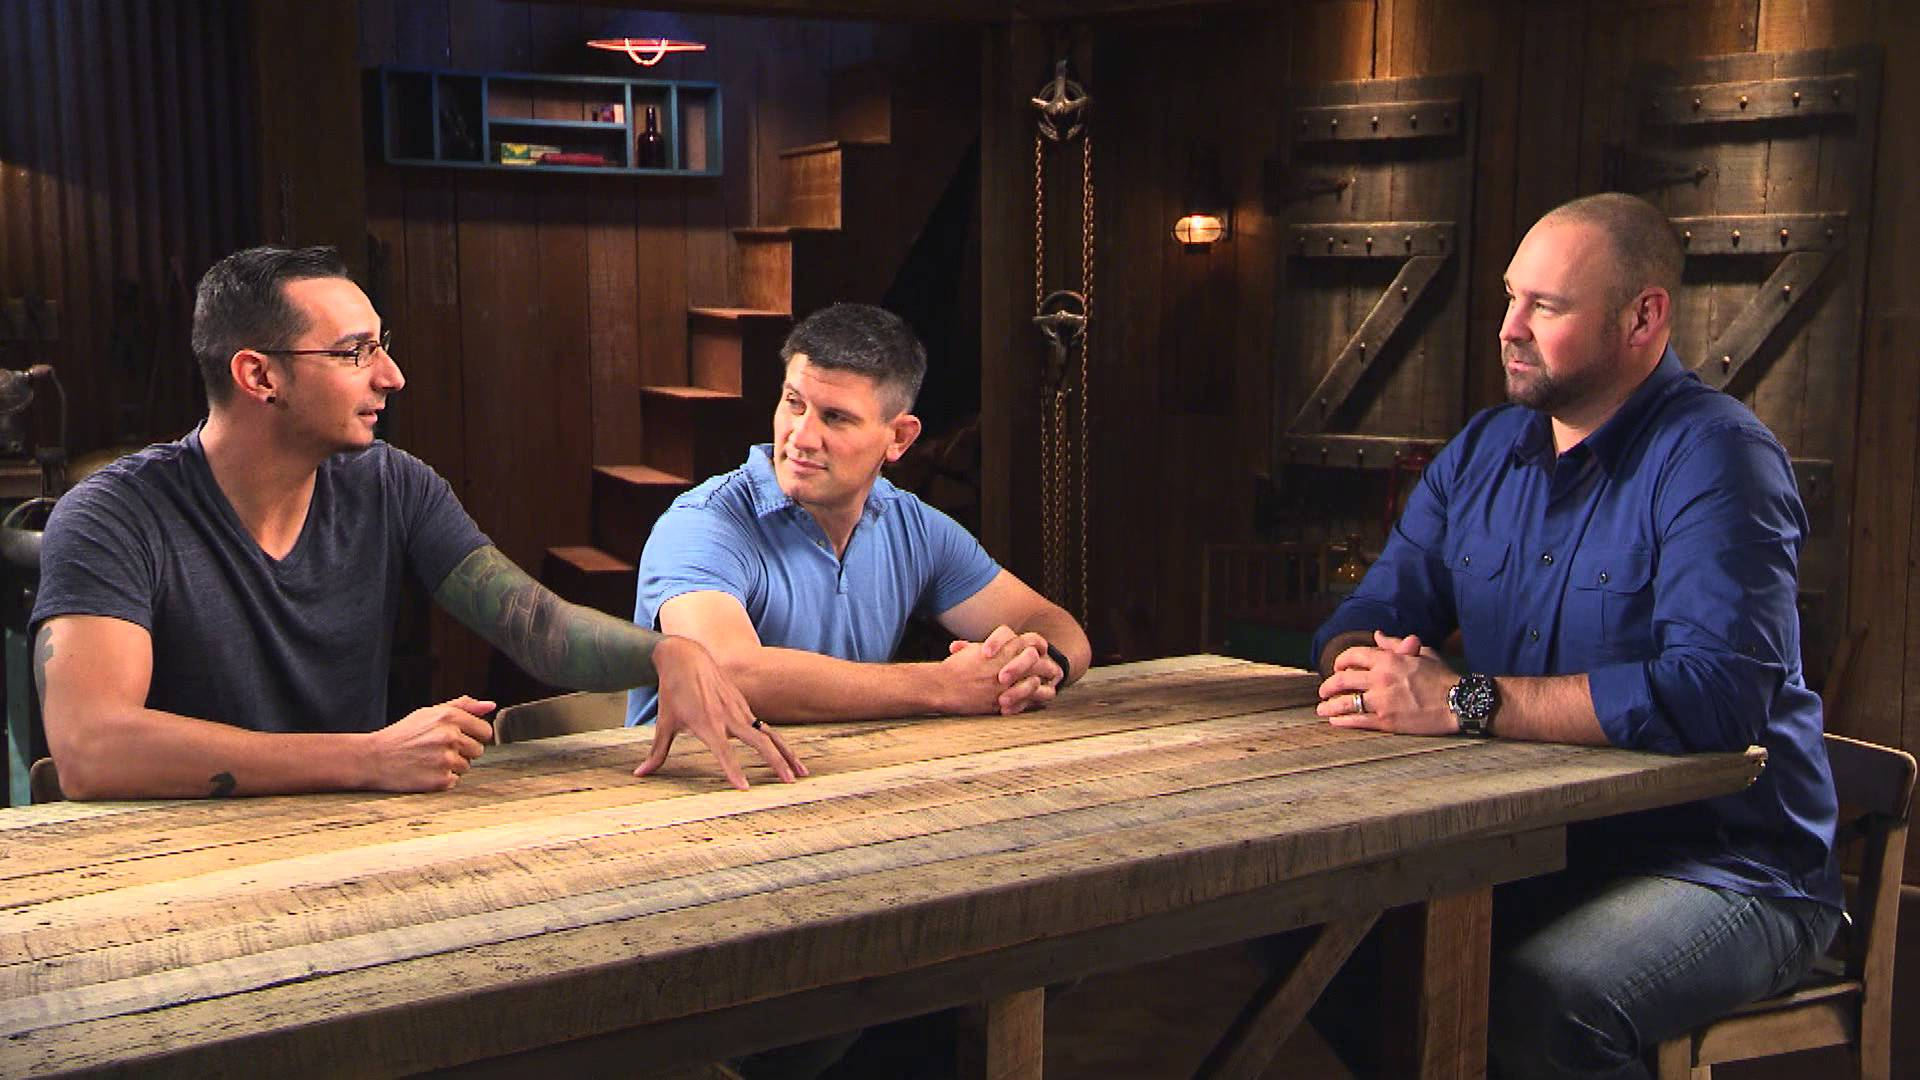 When Does Gold Rush: The Dirt Season 5 Start? Premiere Date